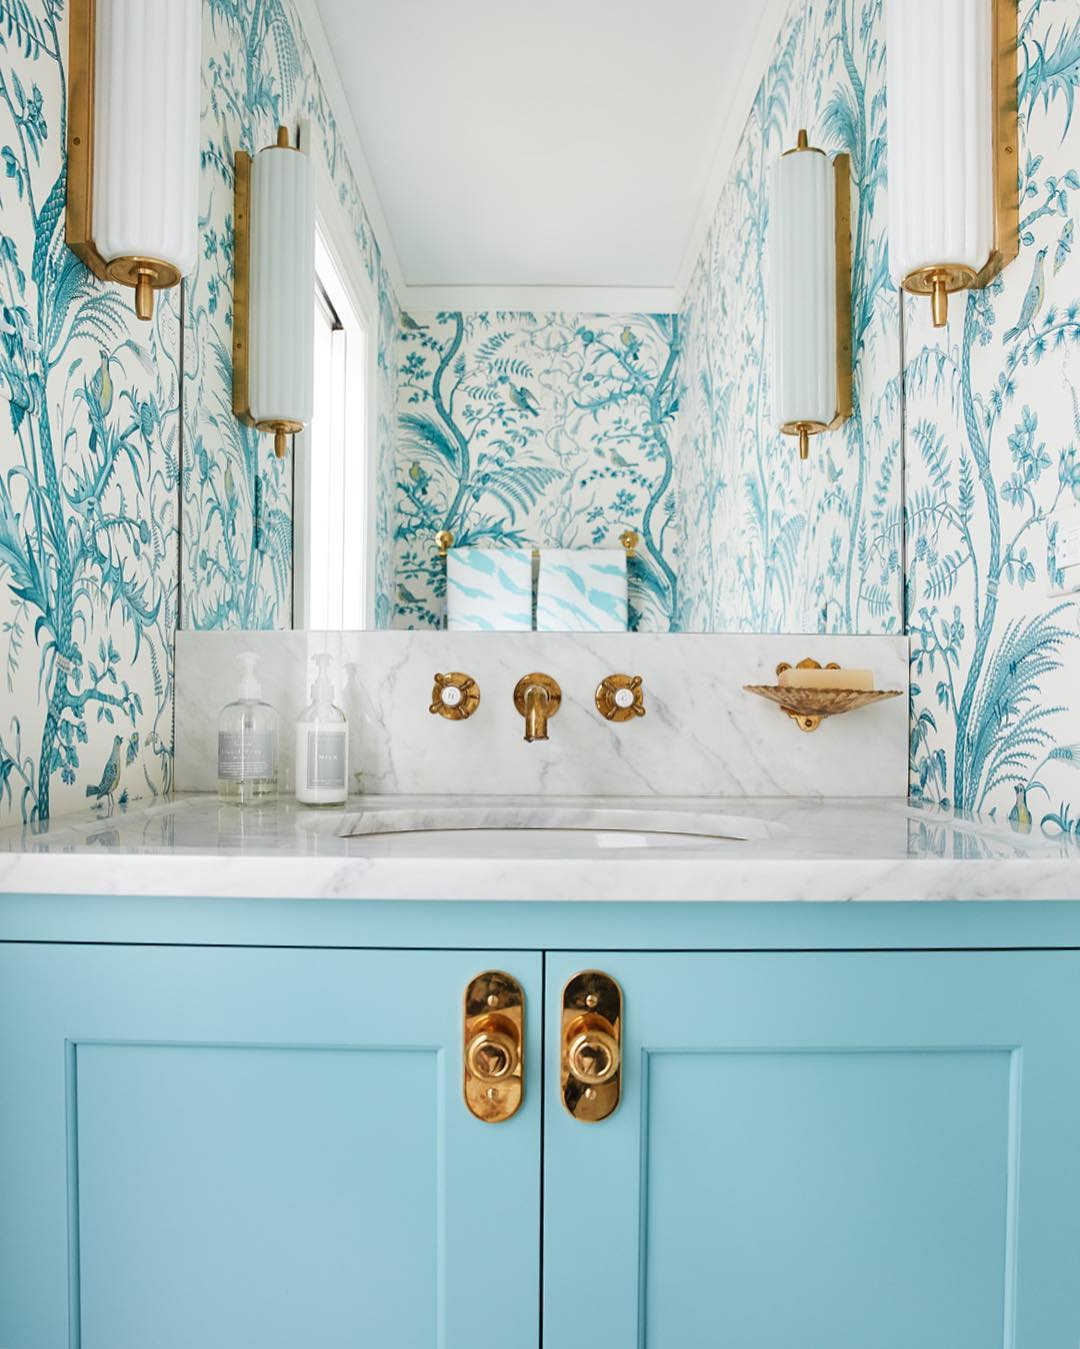 Bathroom with turquoise and white wallpaper, turquoise vanity, brass and white lights, from Amie Corley Interiors (@amiecorleyinteriors) on Instagram